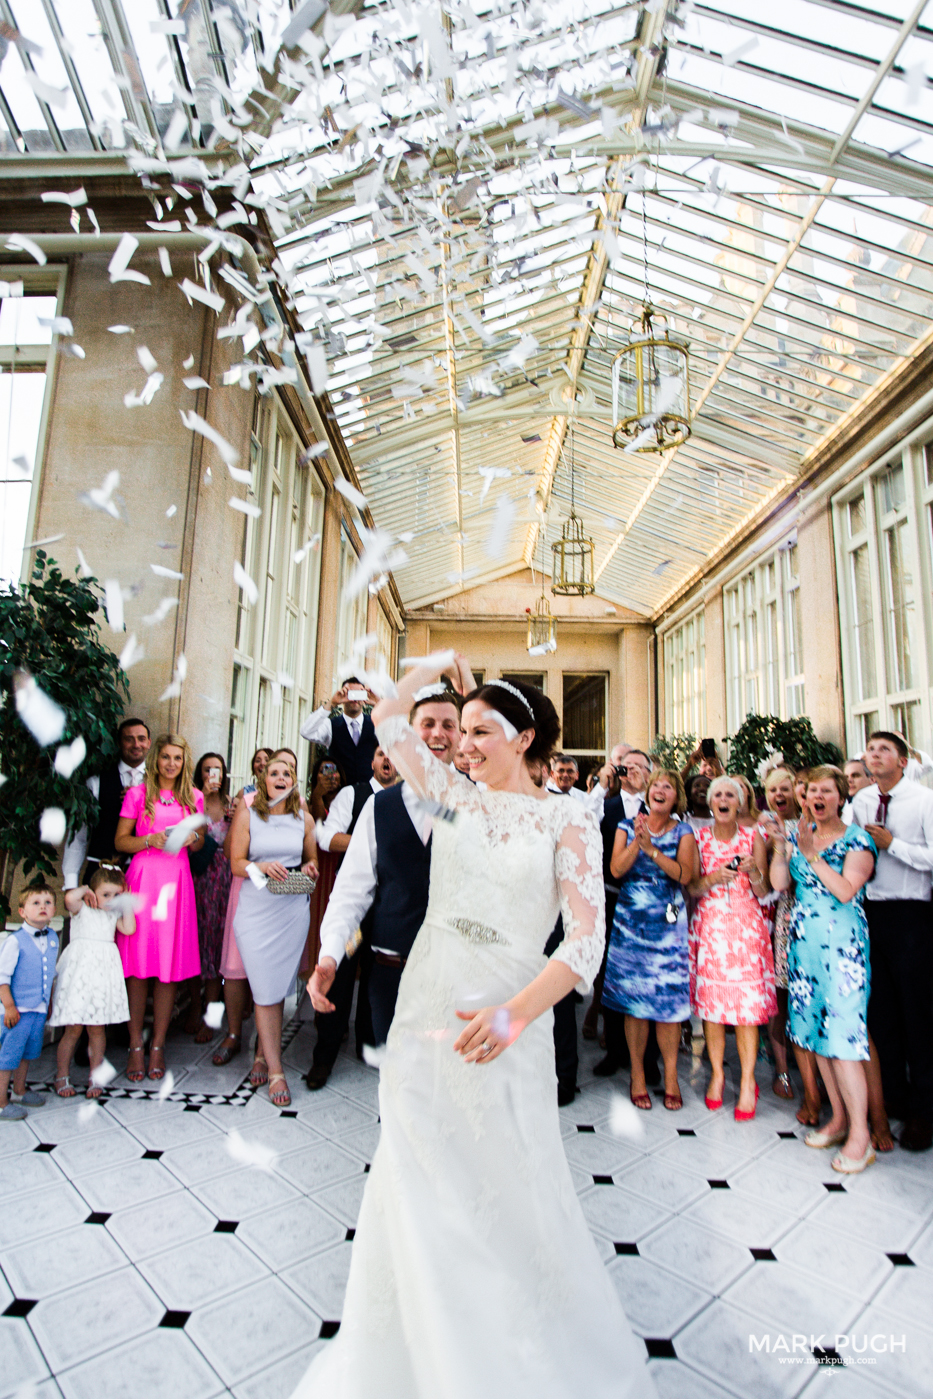 142 Laura and Matt - Stoke Rochford Hall Wedding by Mark Pugh www.markpugh.com - Do not edit or crop this image without consent 1075.jpg